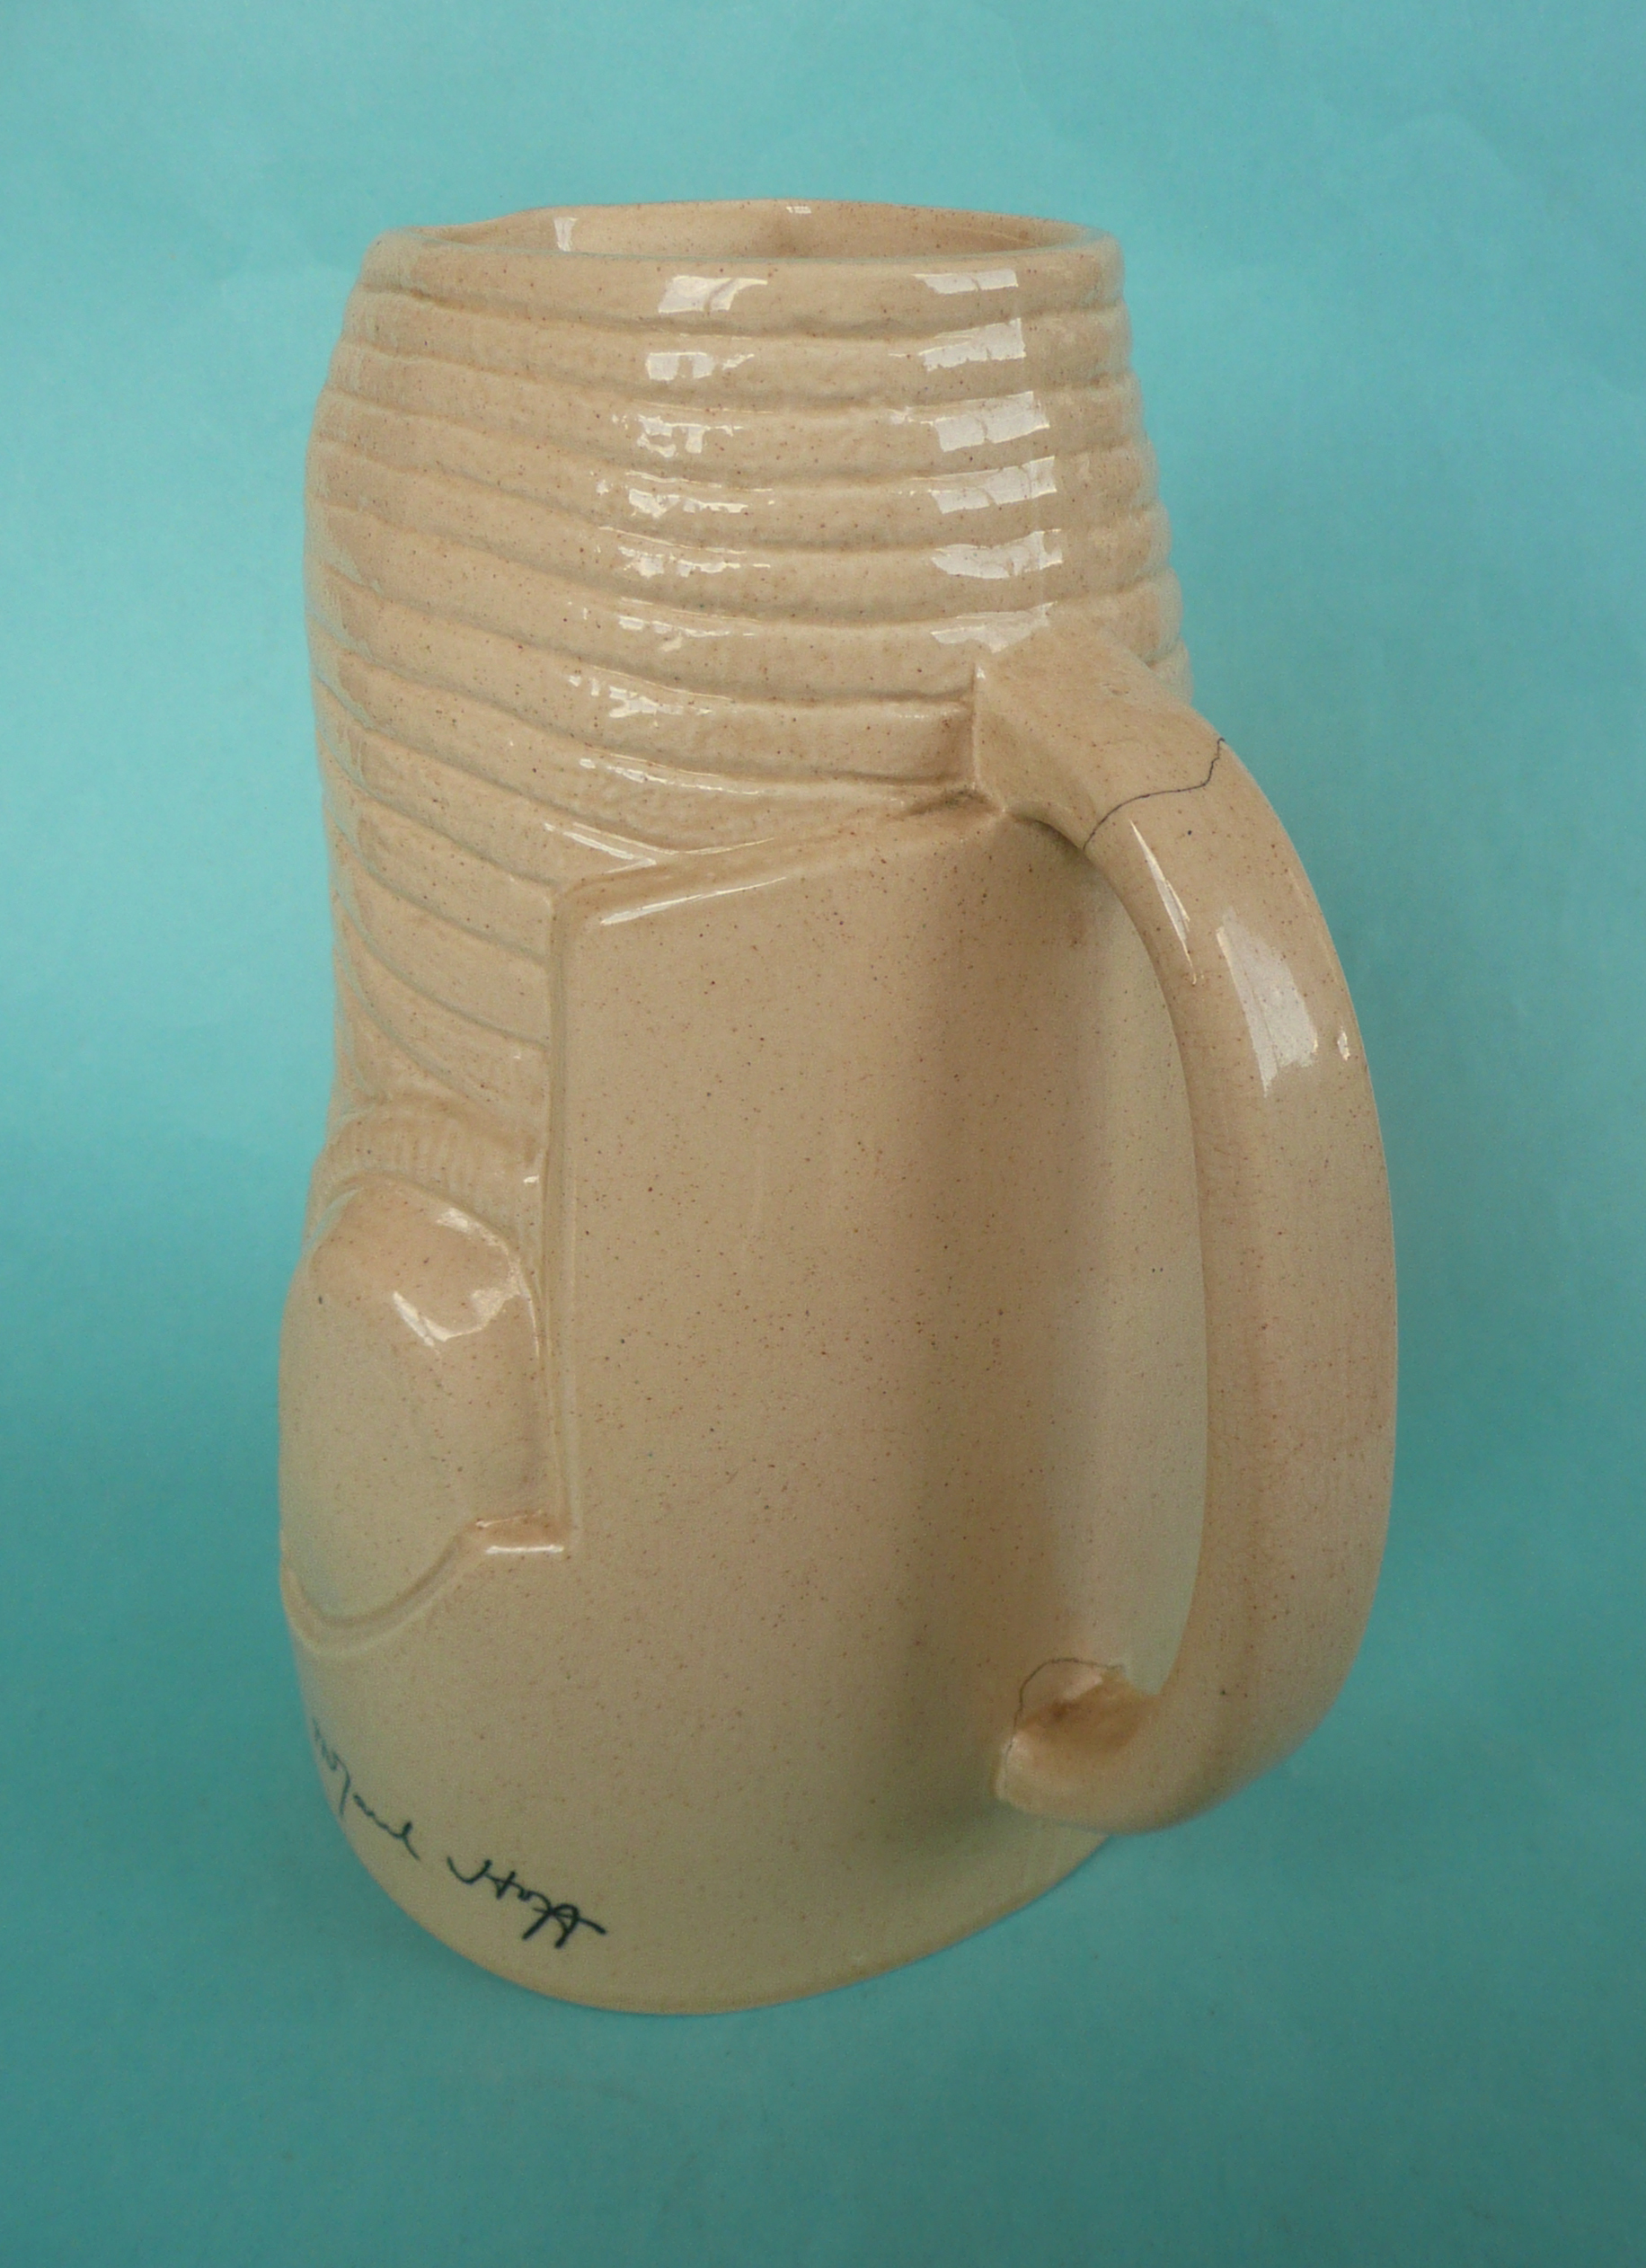 Lot 37 - Sir Douglas McGarel Hogg: an Ashstead pottery jug by Percy Metcalfe moulded with name and printed